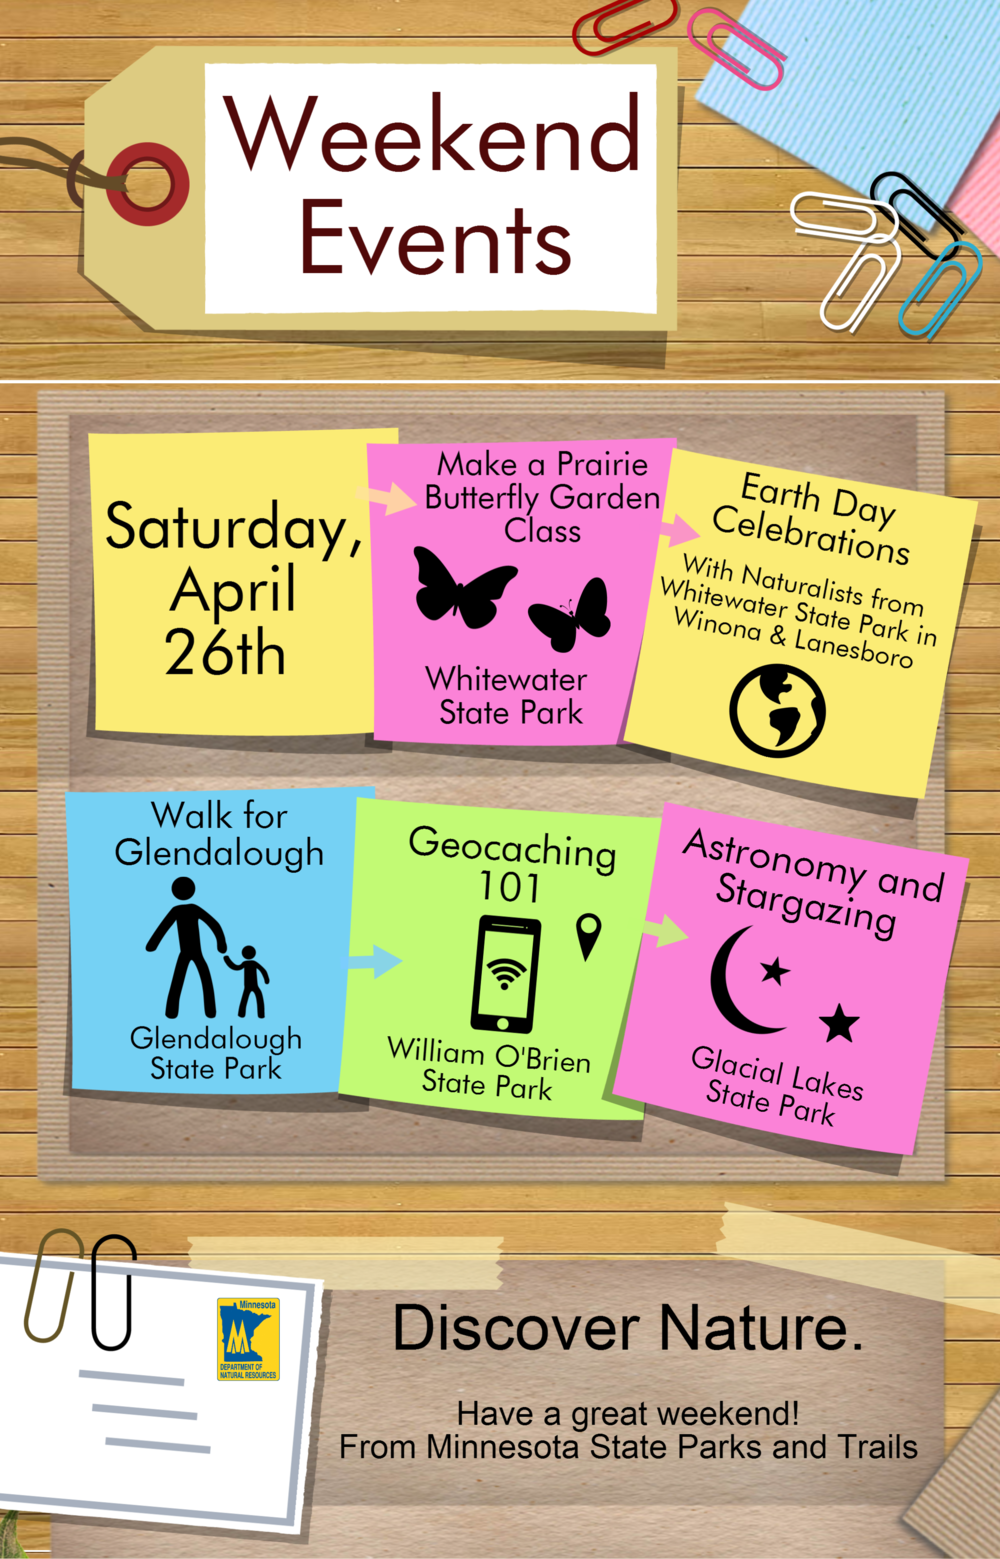 todo_events_april26 (2).png